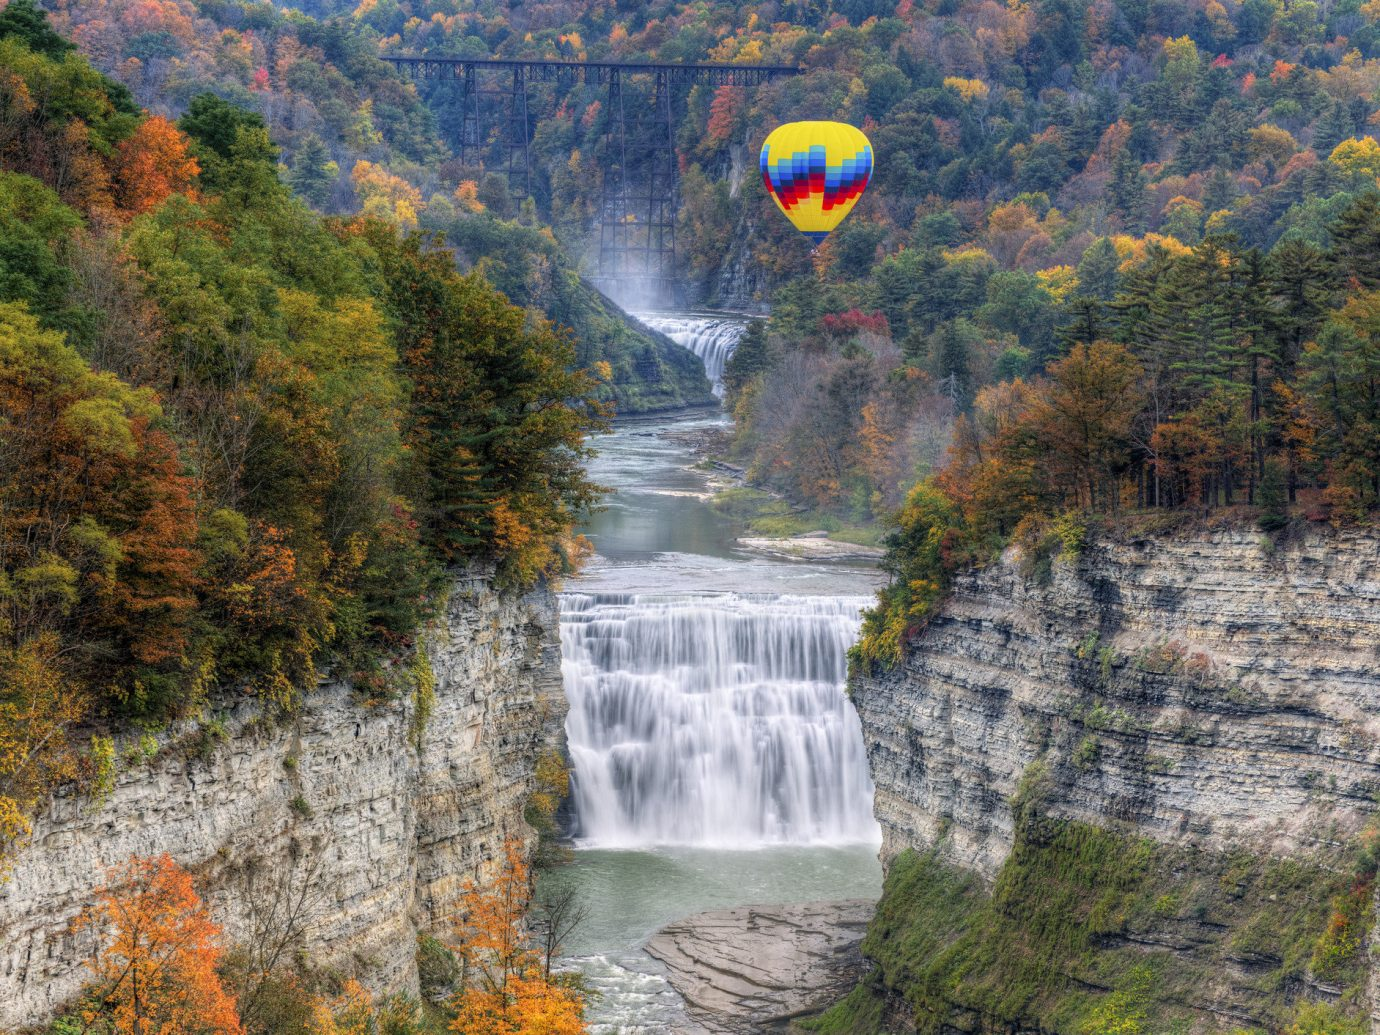 Secret Getaways Trip Ideas Weekend Getaways tree outdoor Nature water leaf body of water Waterfall autumn nature reserve River water feature watercourse national park biome landscape escarpment rock Lake Forest plant mountain water resources state park chute stream wooded colored